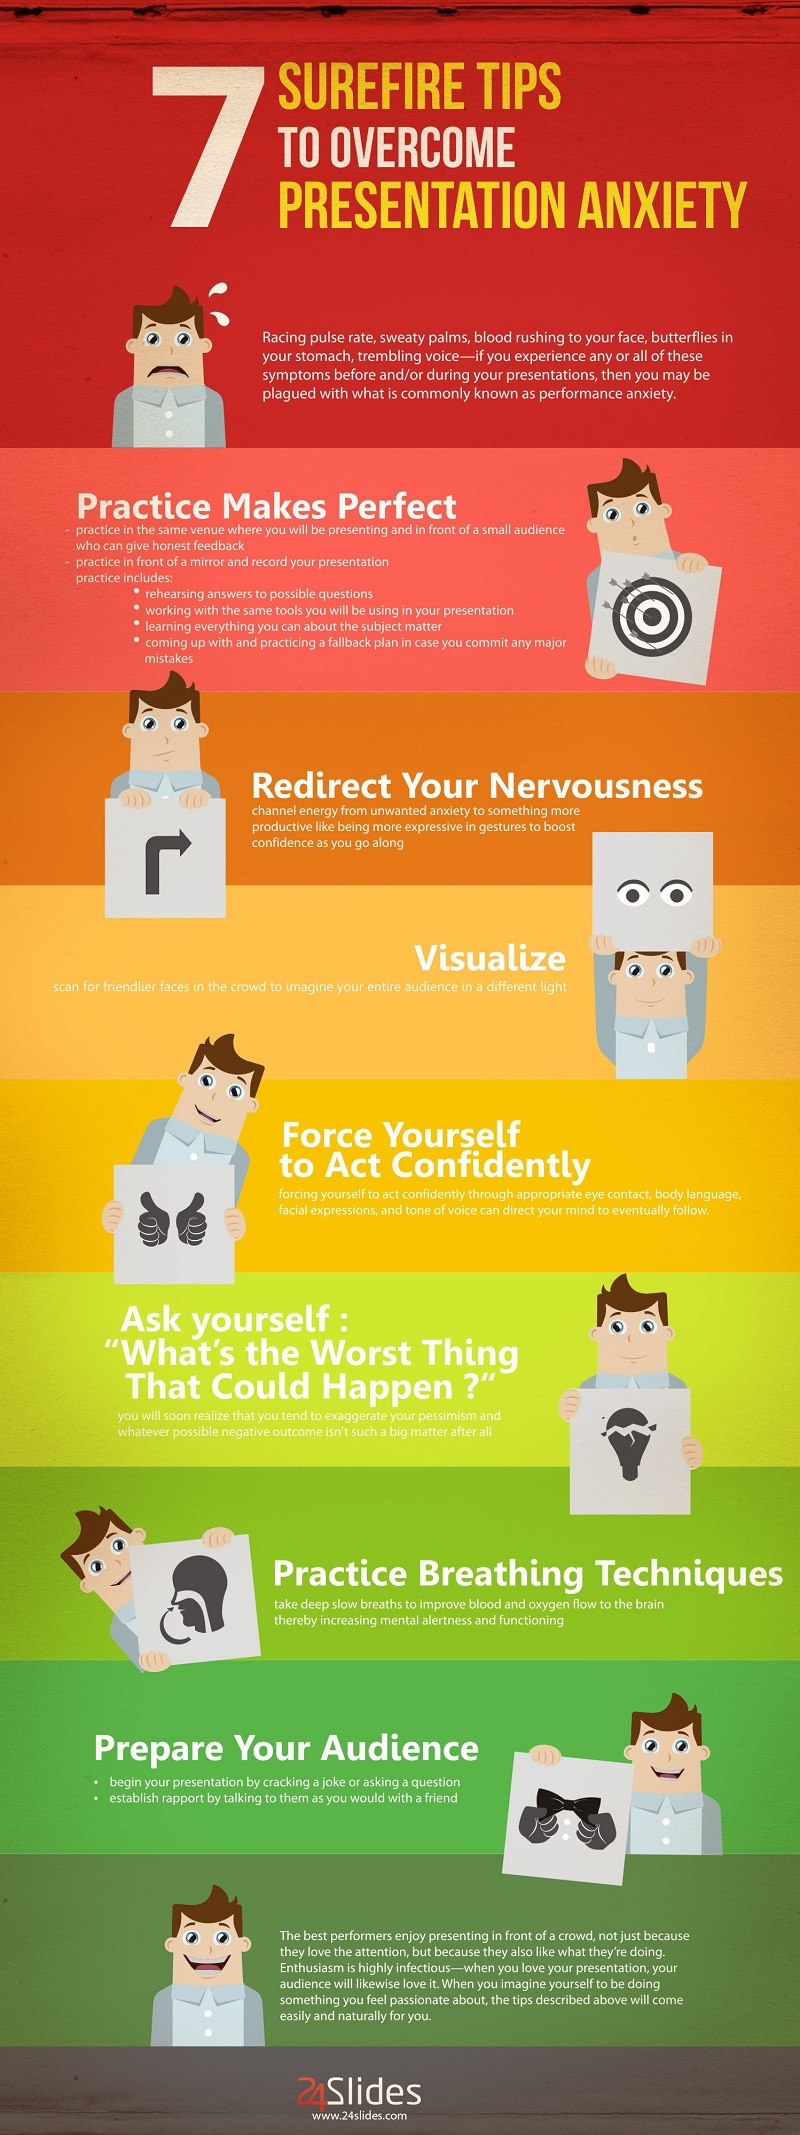 img 7 Surefire Tips to Overcome Presentation Anxiety